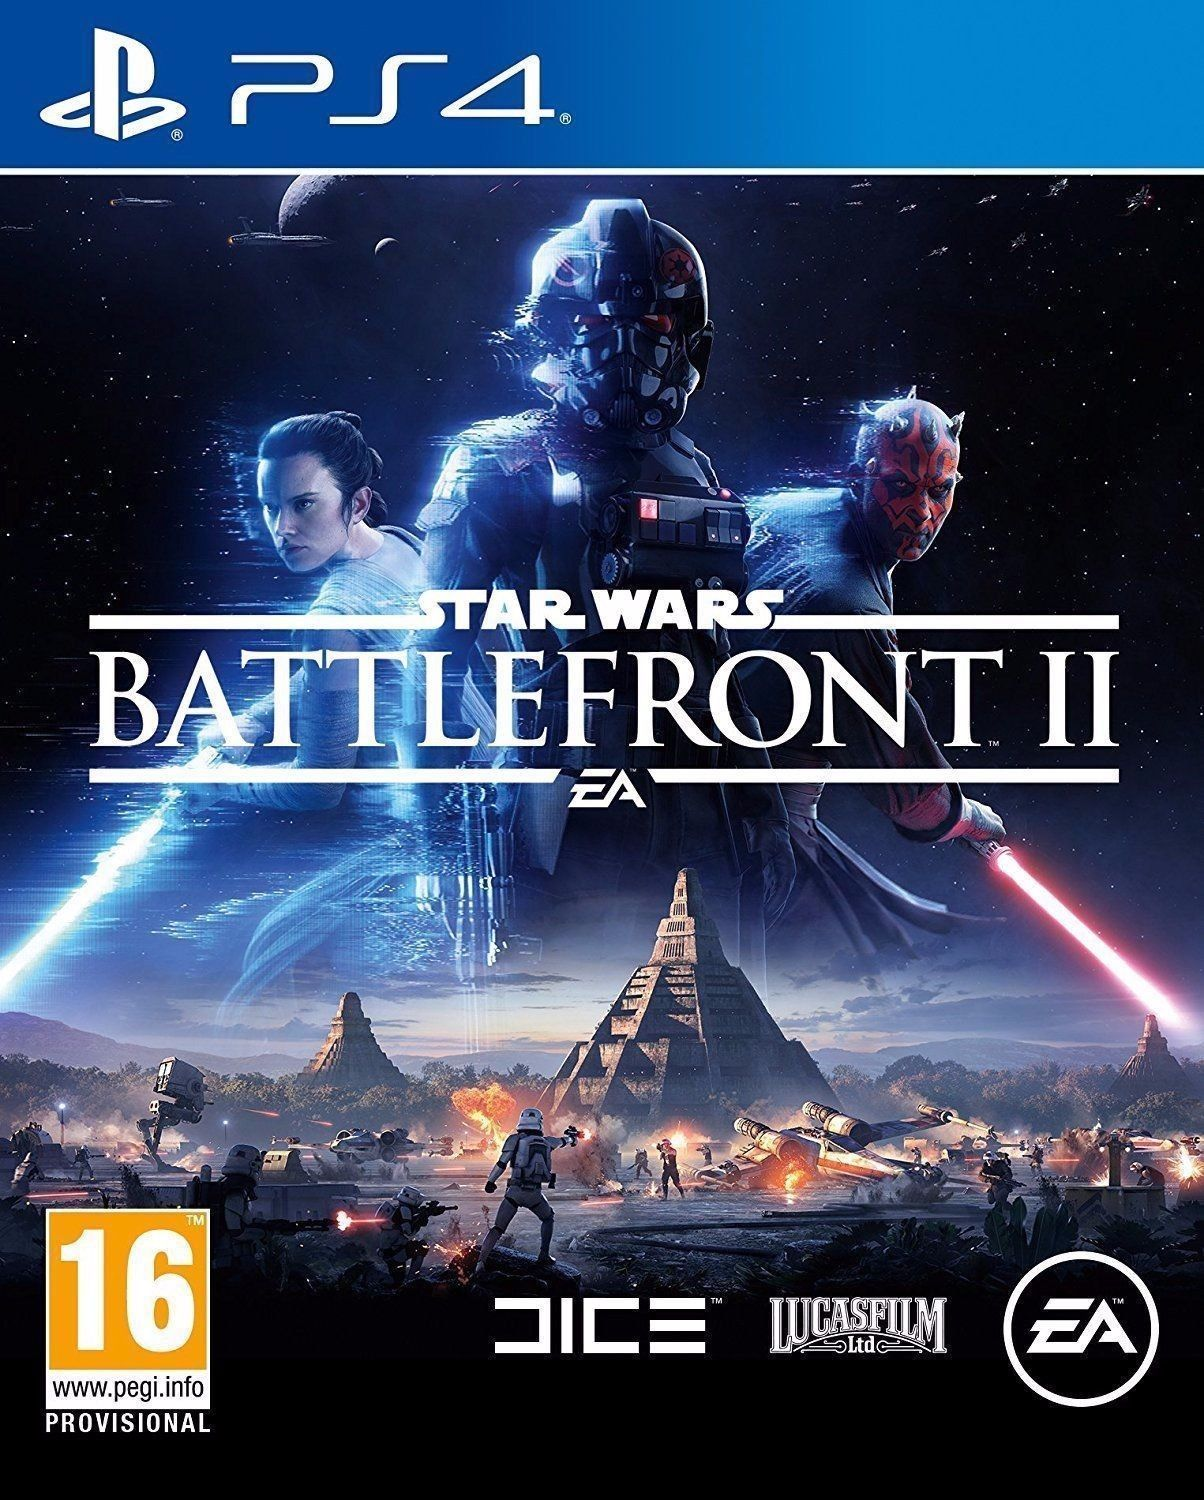 Battlefront 2 Star Wars PS4 Playstation Pre-Order Physical Copy UK Sealed